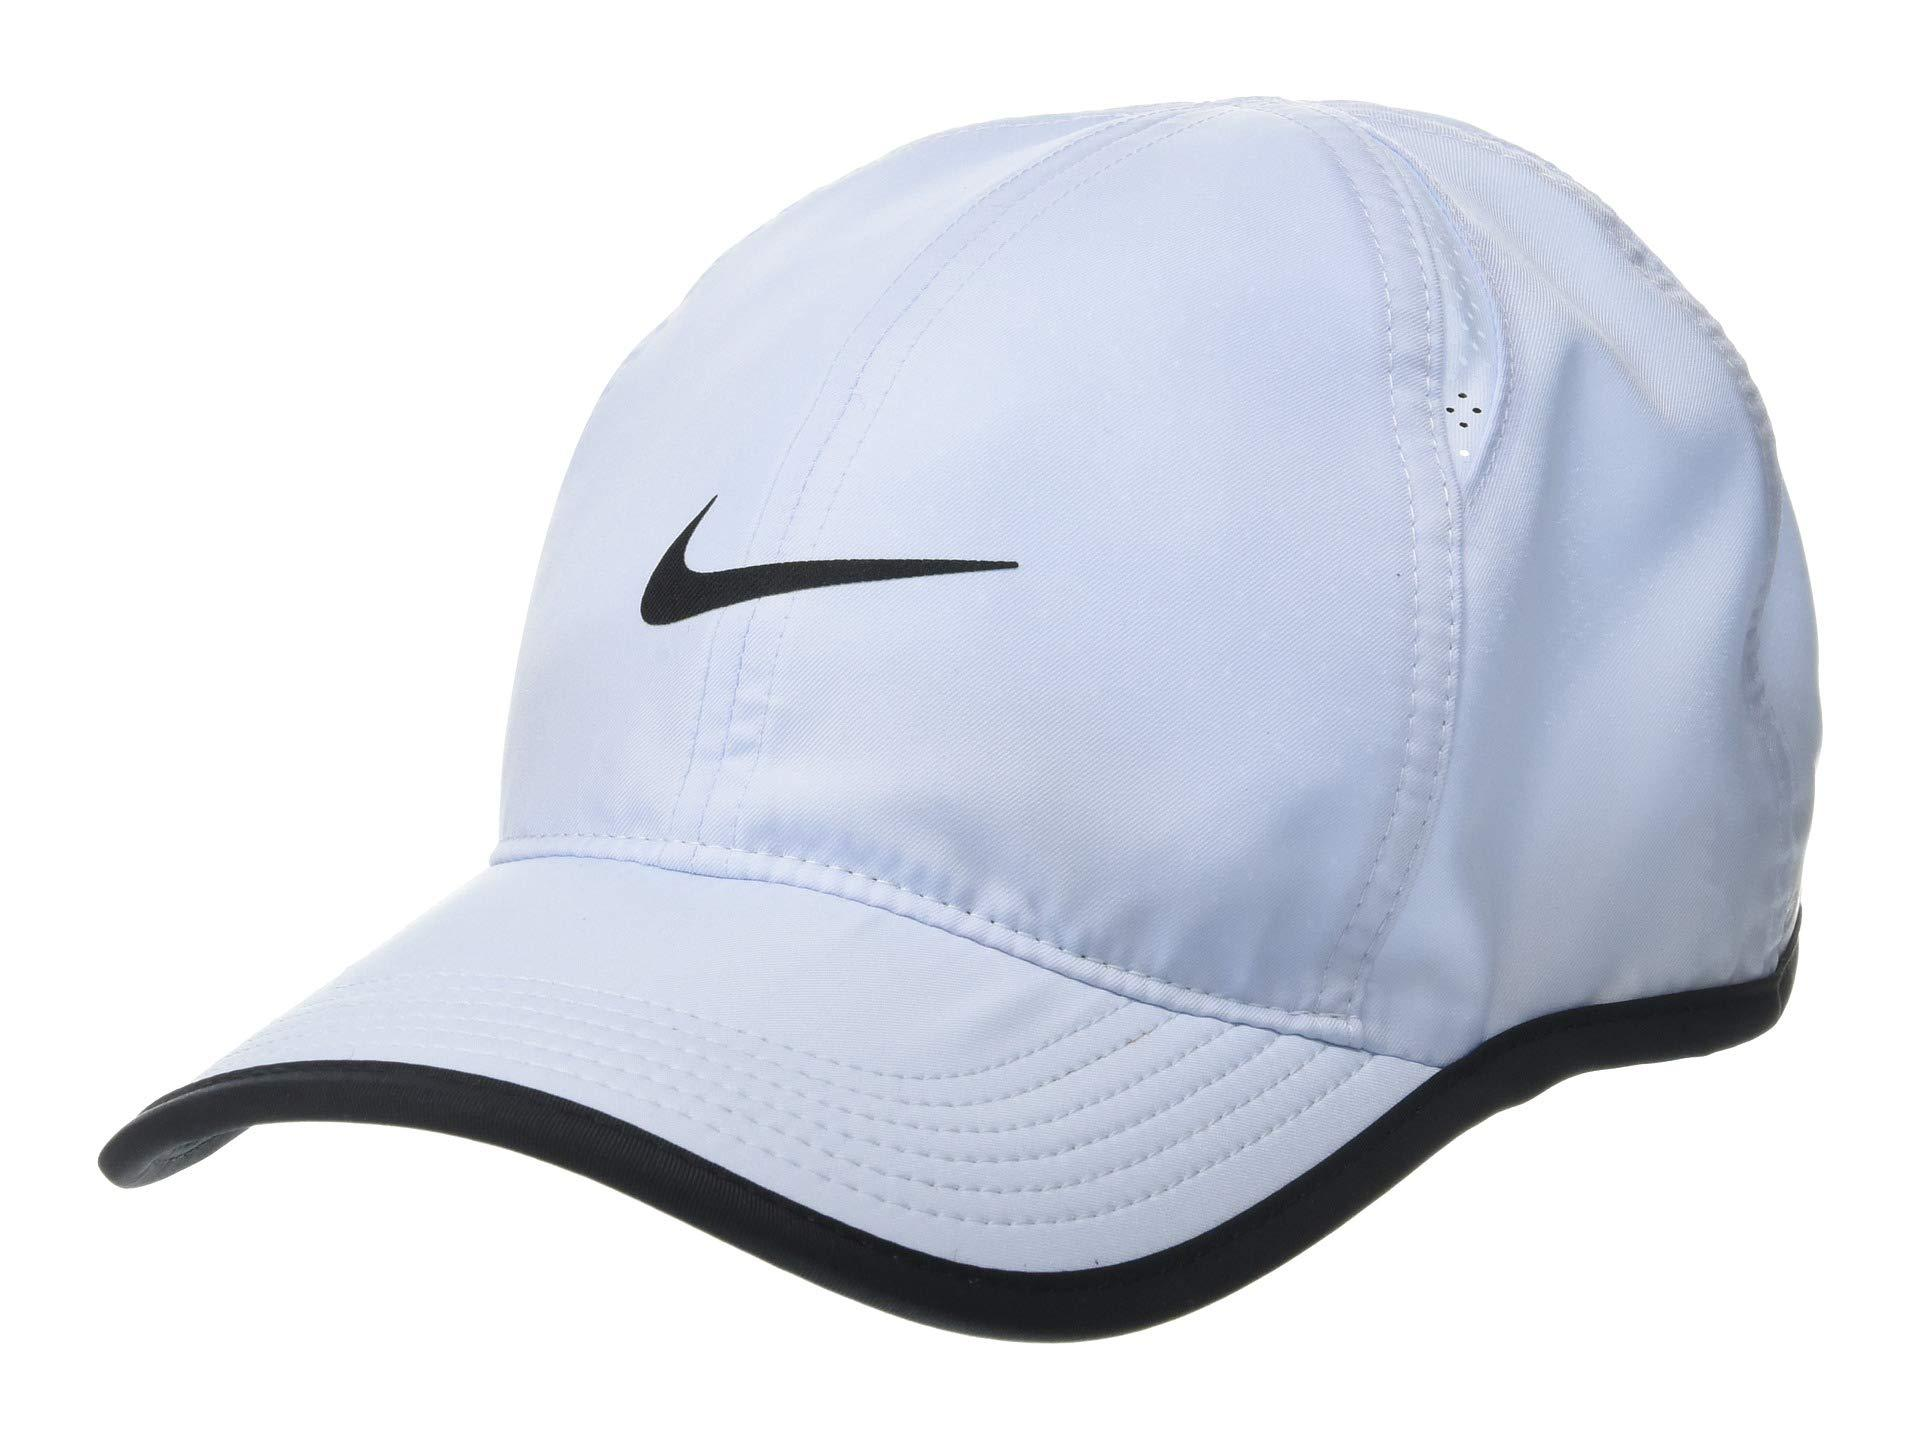 on sale 6b2ff 01c10 Nike Featherlight Cap (obsidian black black white) Caps in Black for ...